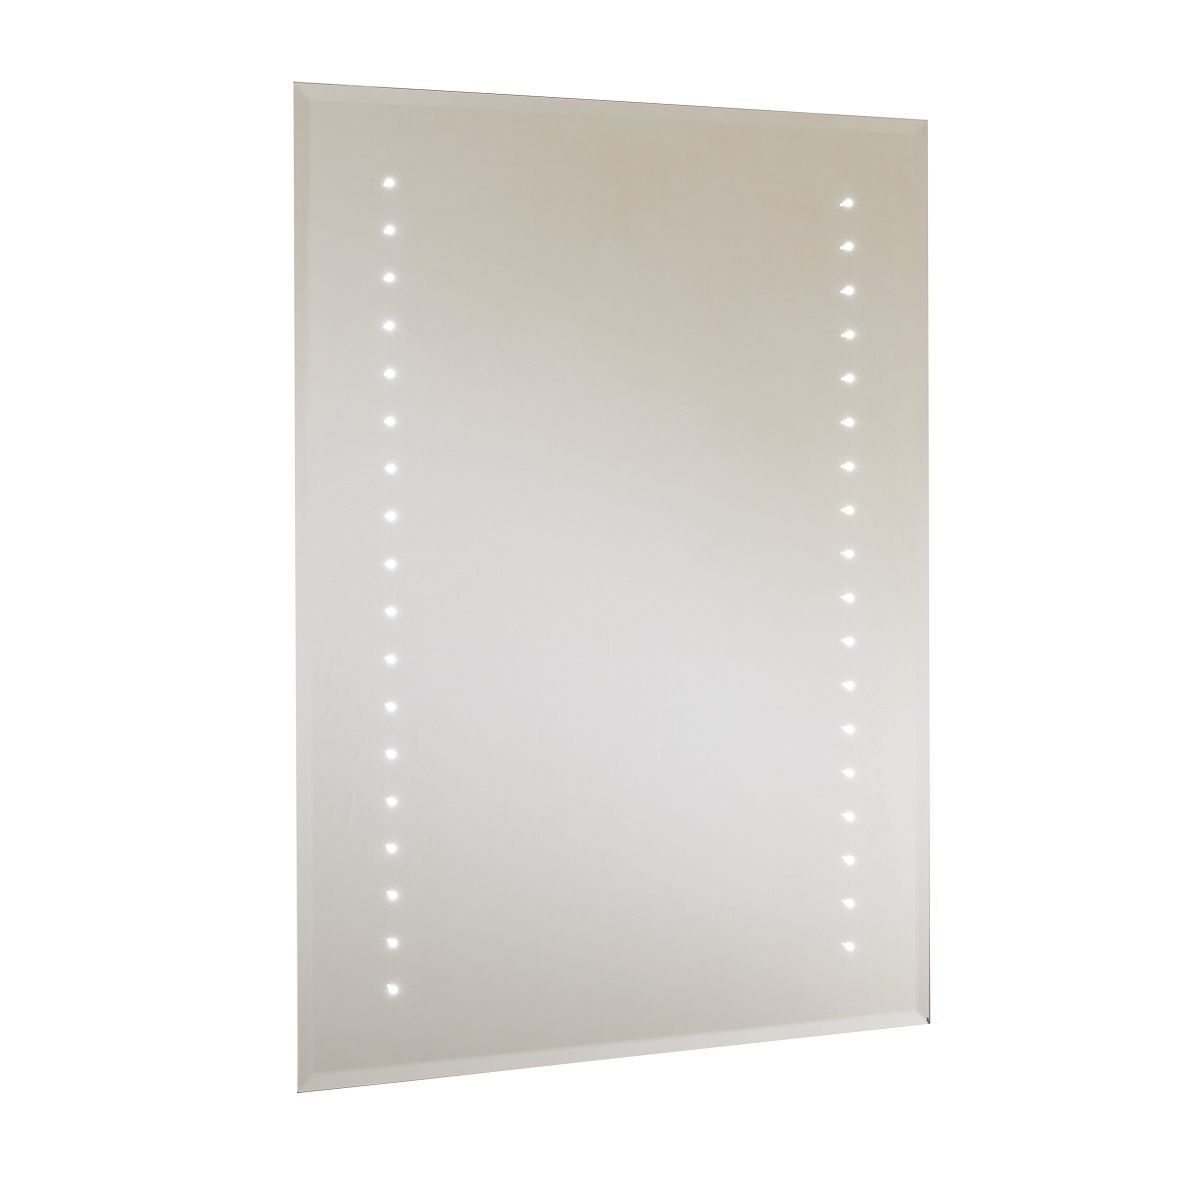 RAK Rubens Illuminated LED Bevel Edged Mirror 700 x 500mm